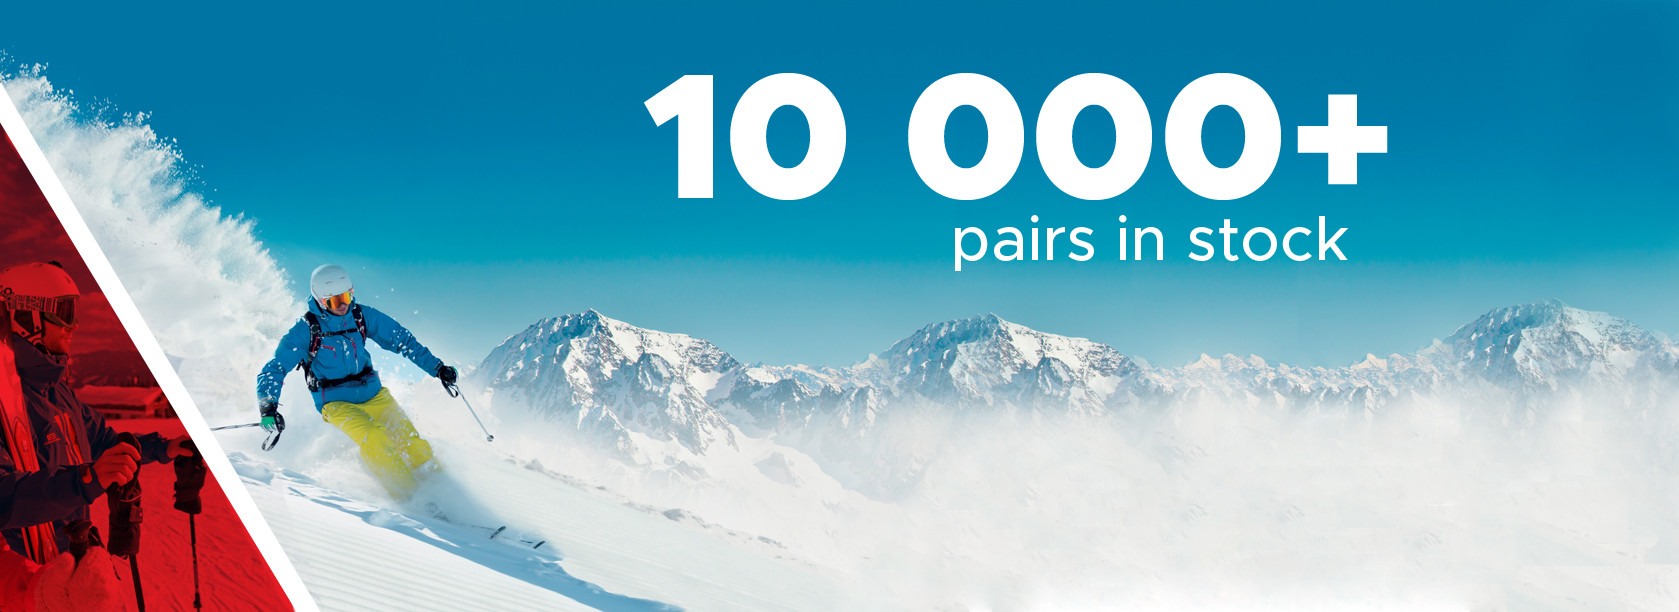 Largest selection of skis, boots, snowboards...